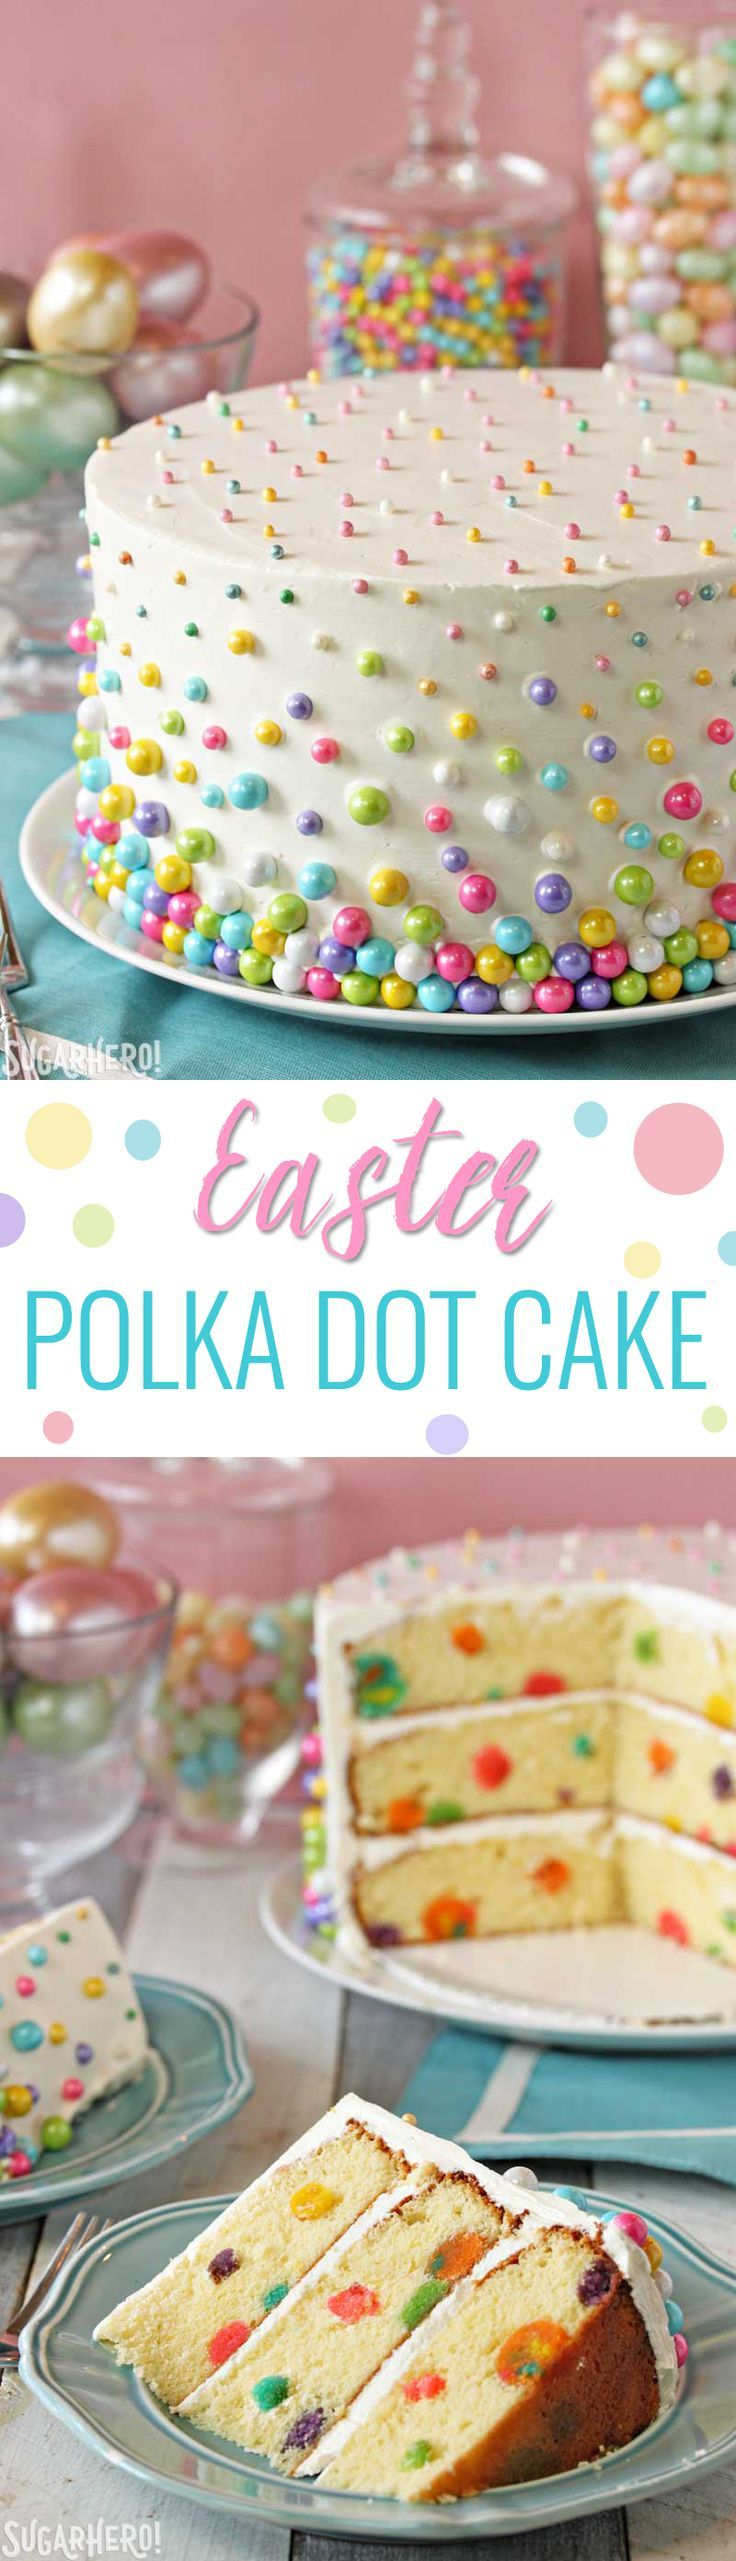 Easter Polka Dot Cake, with polka dots on the outside AND the inside! So fun to cut into, and surprisingly easy to do! | From http://SugarHero.com